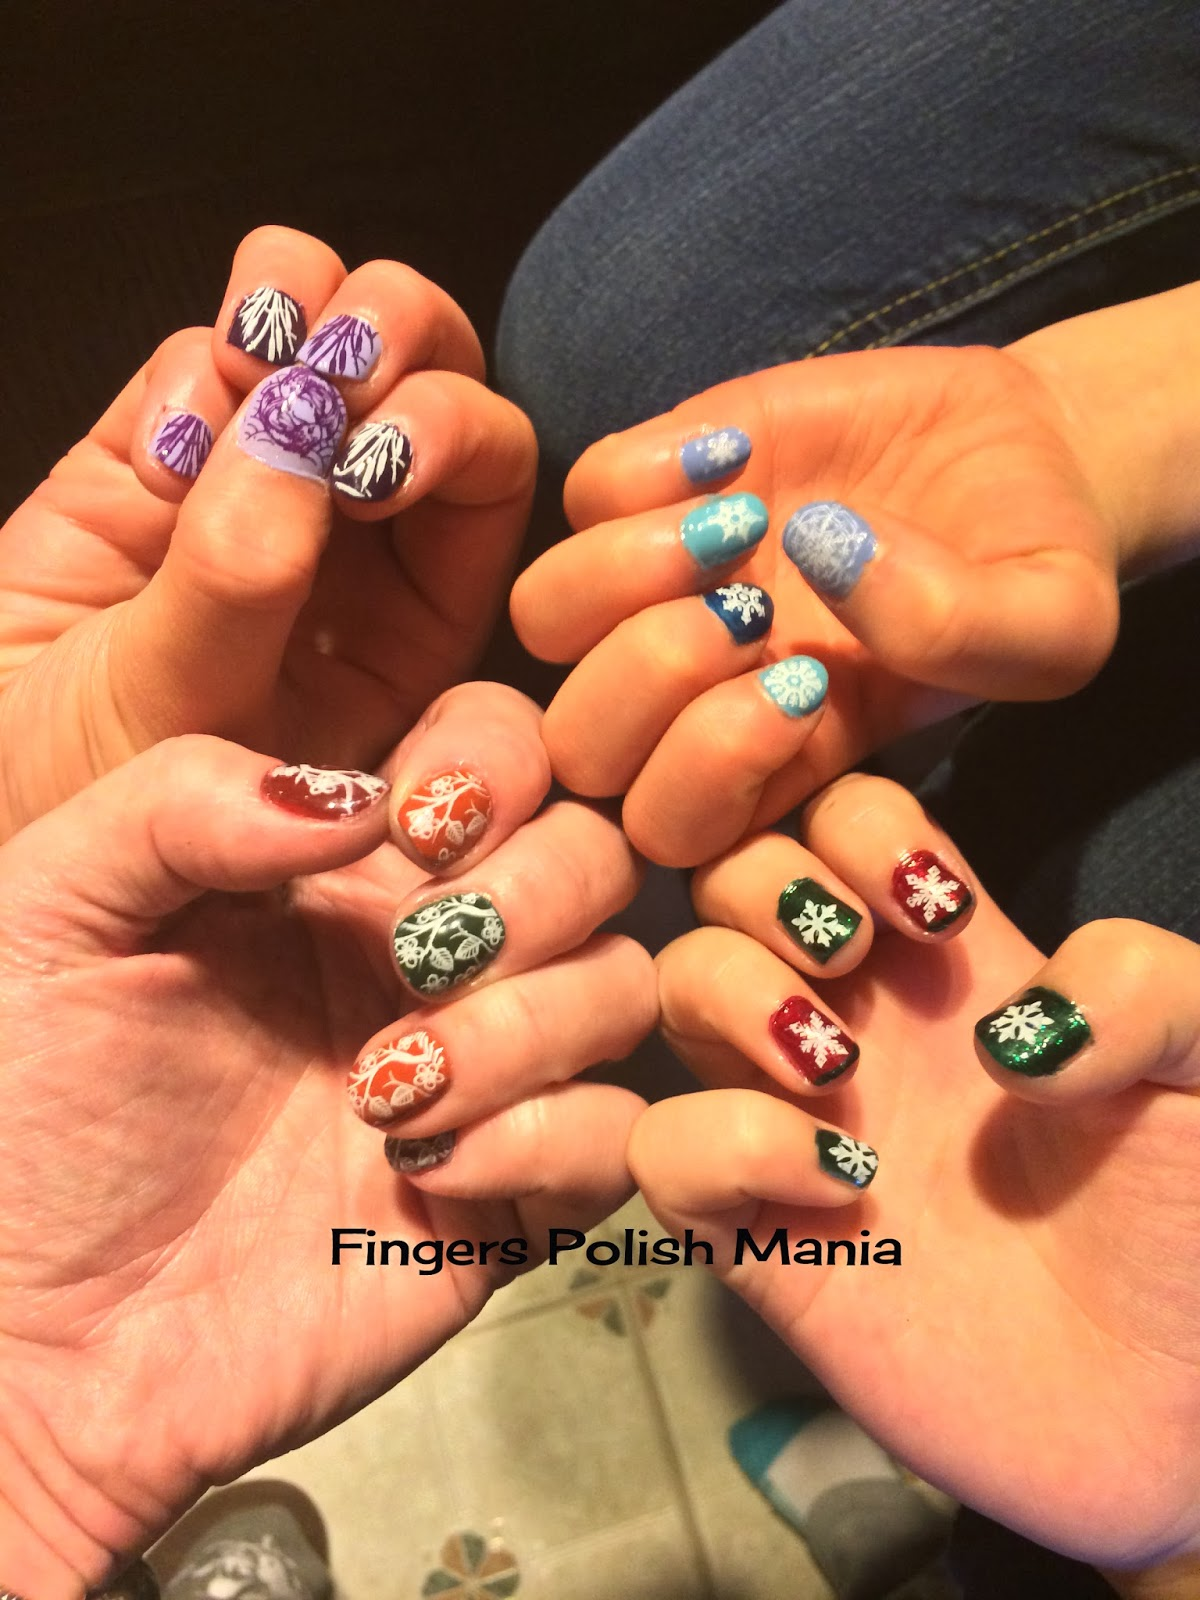 fingers polish mania: Family Nails 1